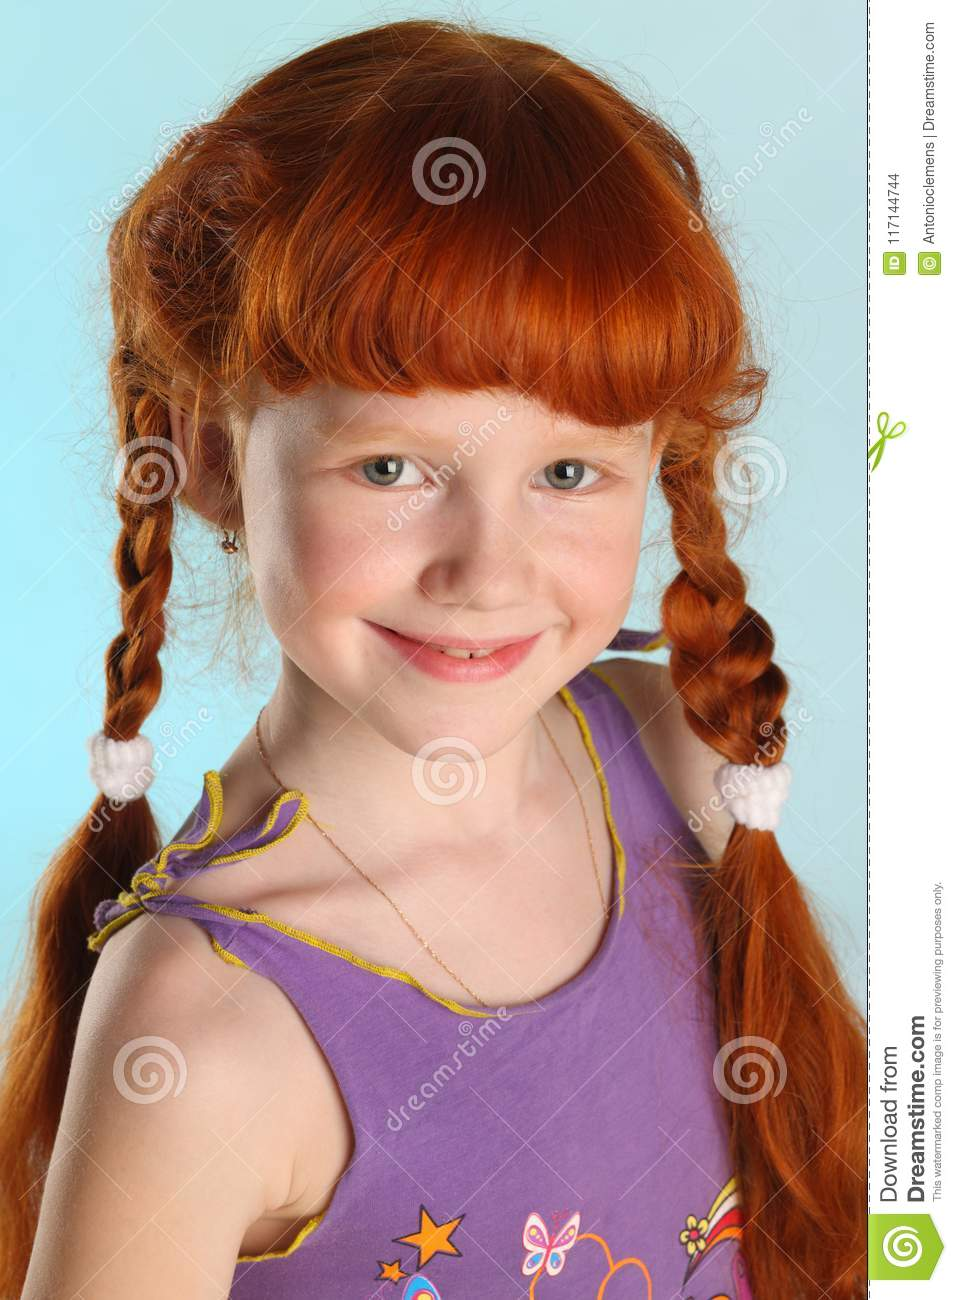 Rather redhead pigtails young teen girl opinion here